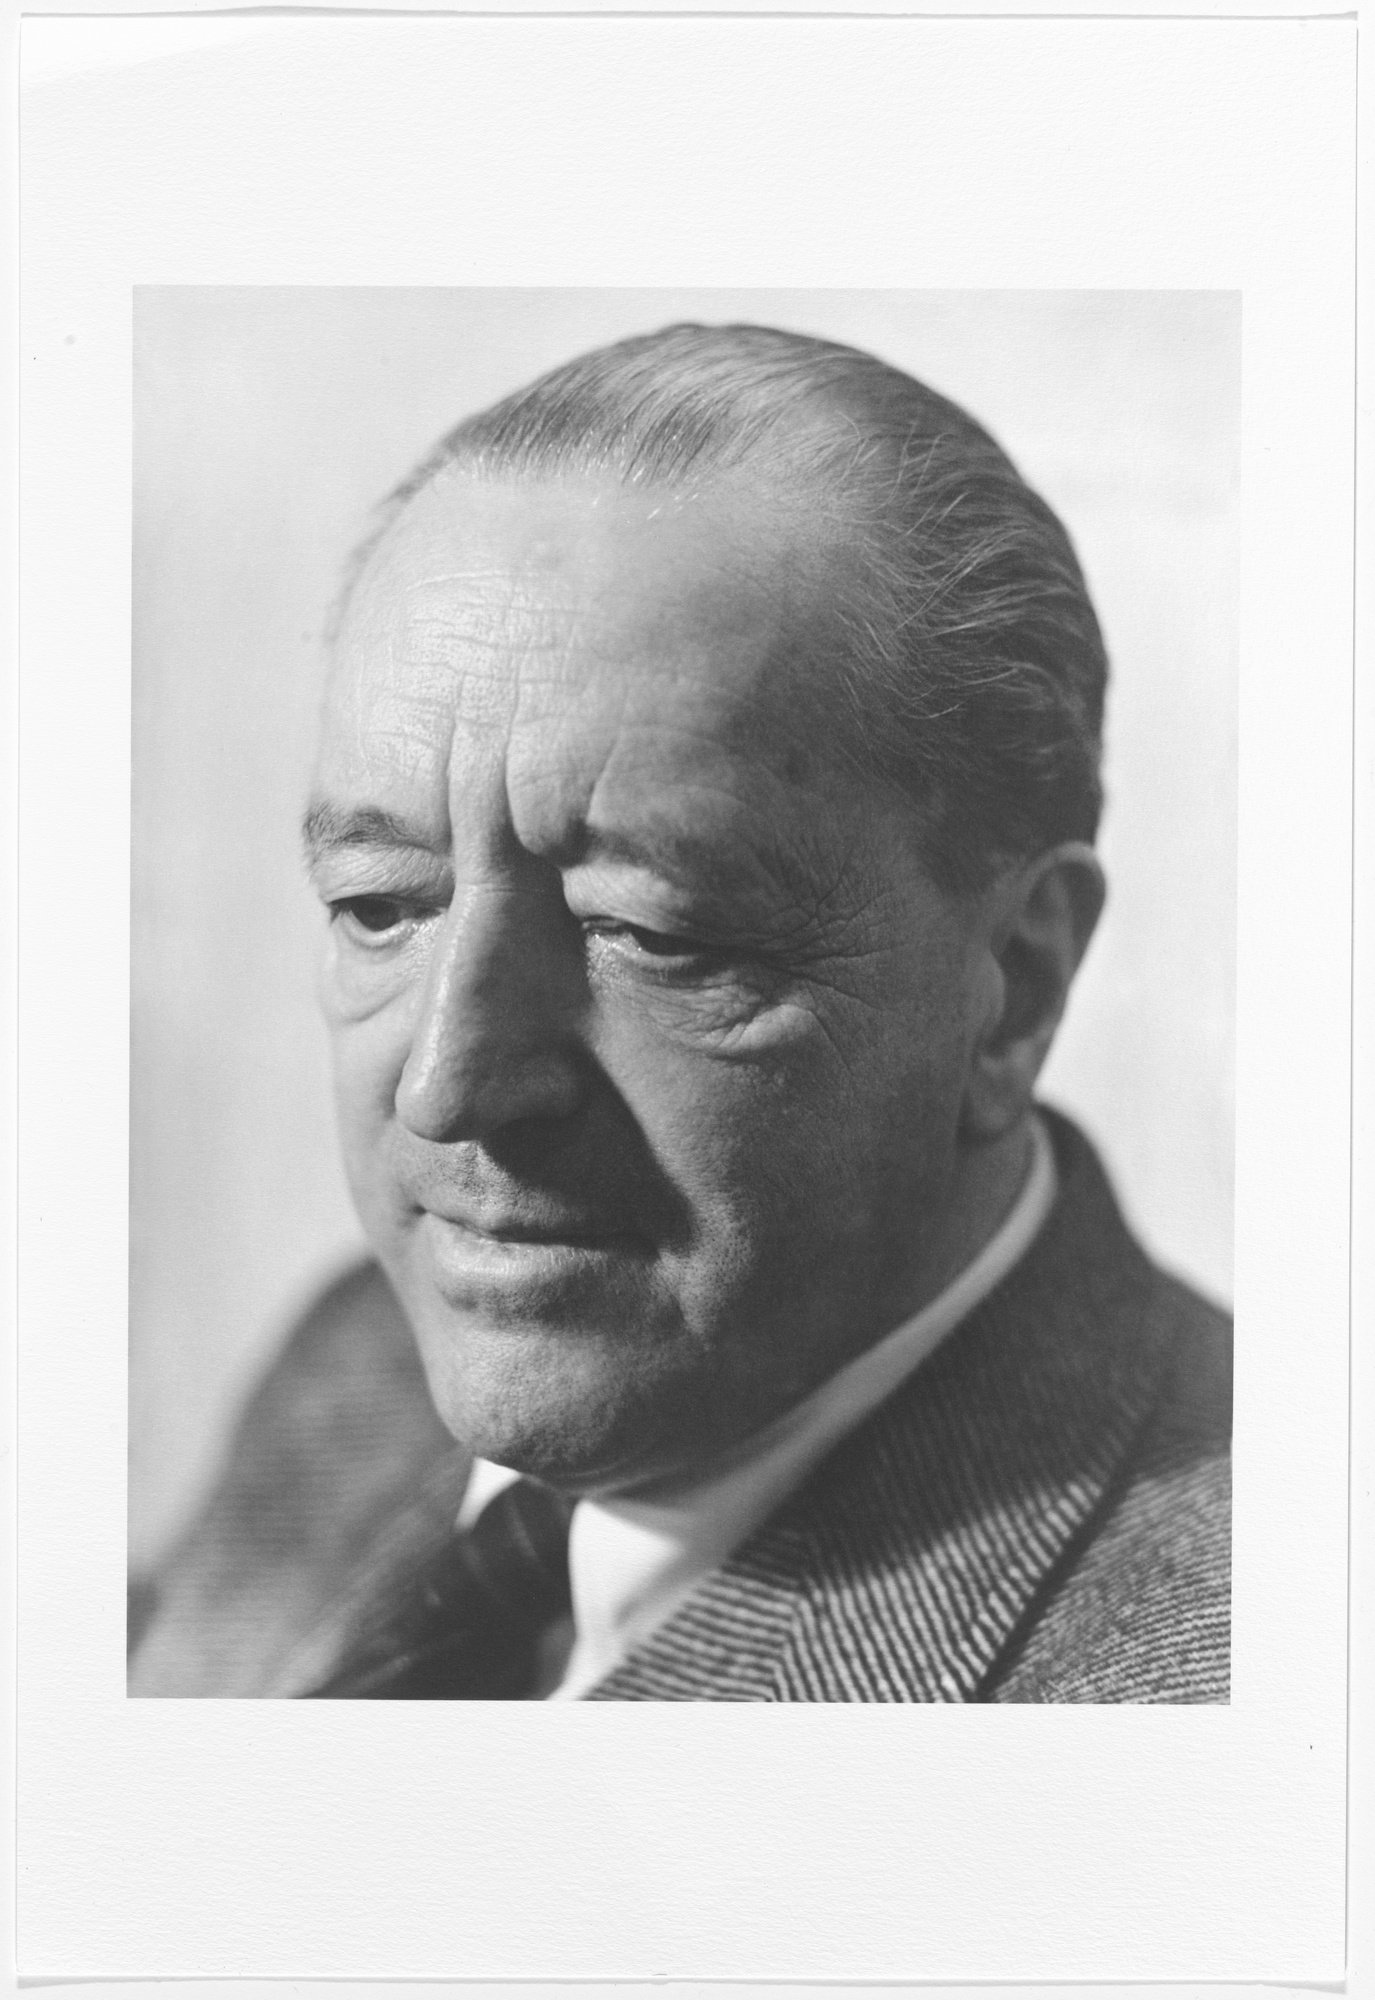 helen-balfour-morrison-mies-van-der-rohe-c-1947-sitter-ludwig-mies-van-der-rohe-pigmented-inkjet-print-19-x-13-48-3-x-33-cm-gift-of-the-morrison-shearer-foundation-northbrook-il